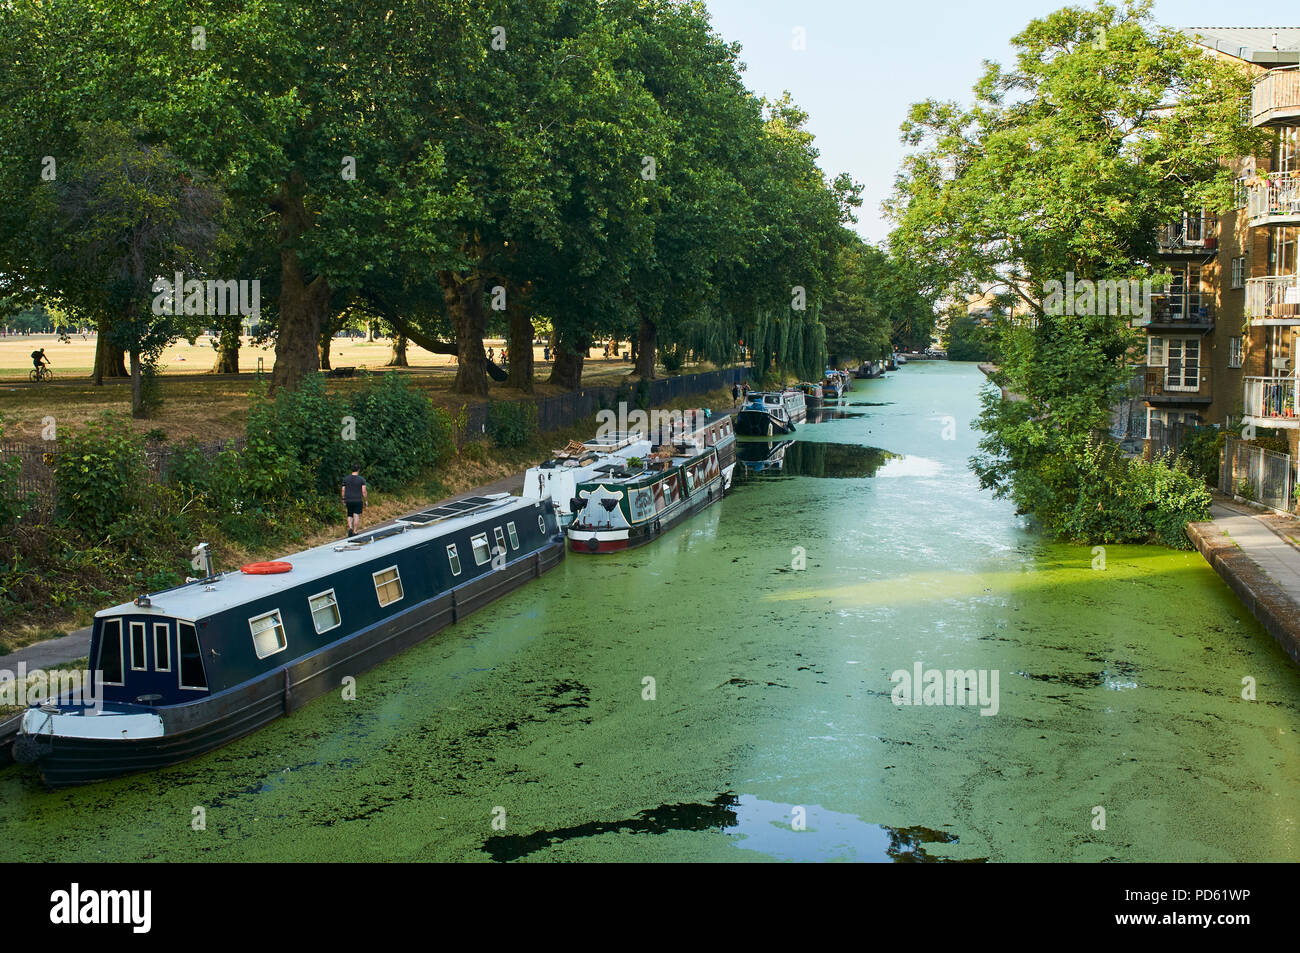 The Hertford Union Canal on the edge of Victoria Park, East London UK, filled with algae, during the summer heatwave of 2018 - Stock Image